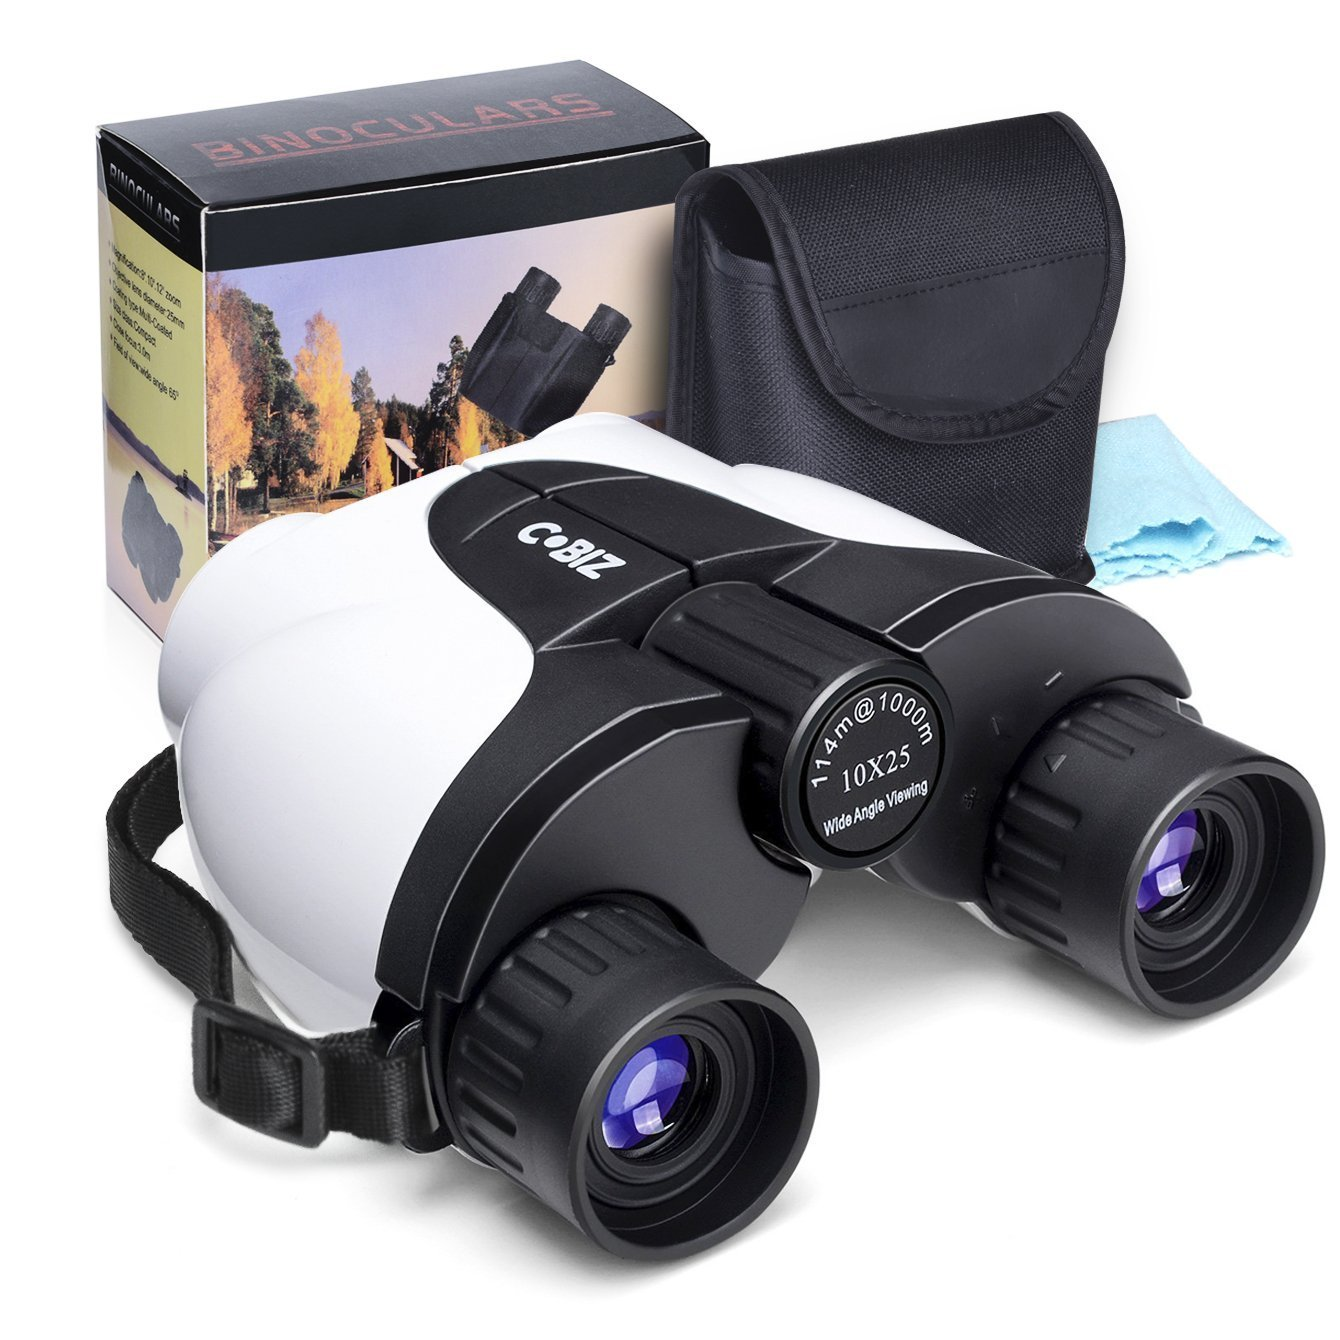 Cobiz Kids Binoculars, 10x25 Outdoor Binoculars for Kids